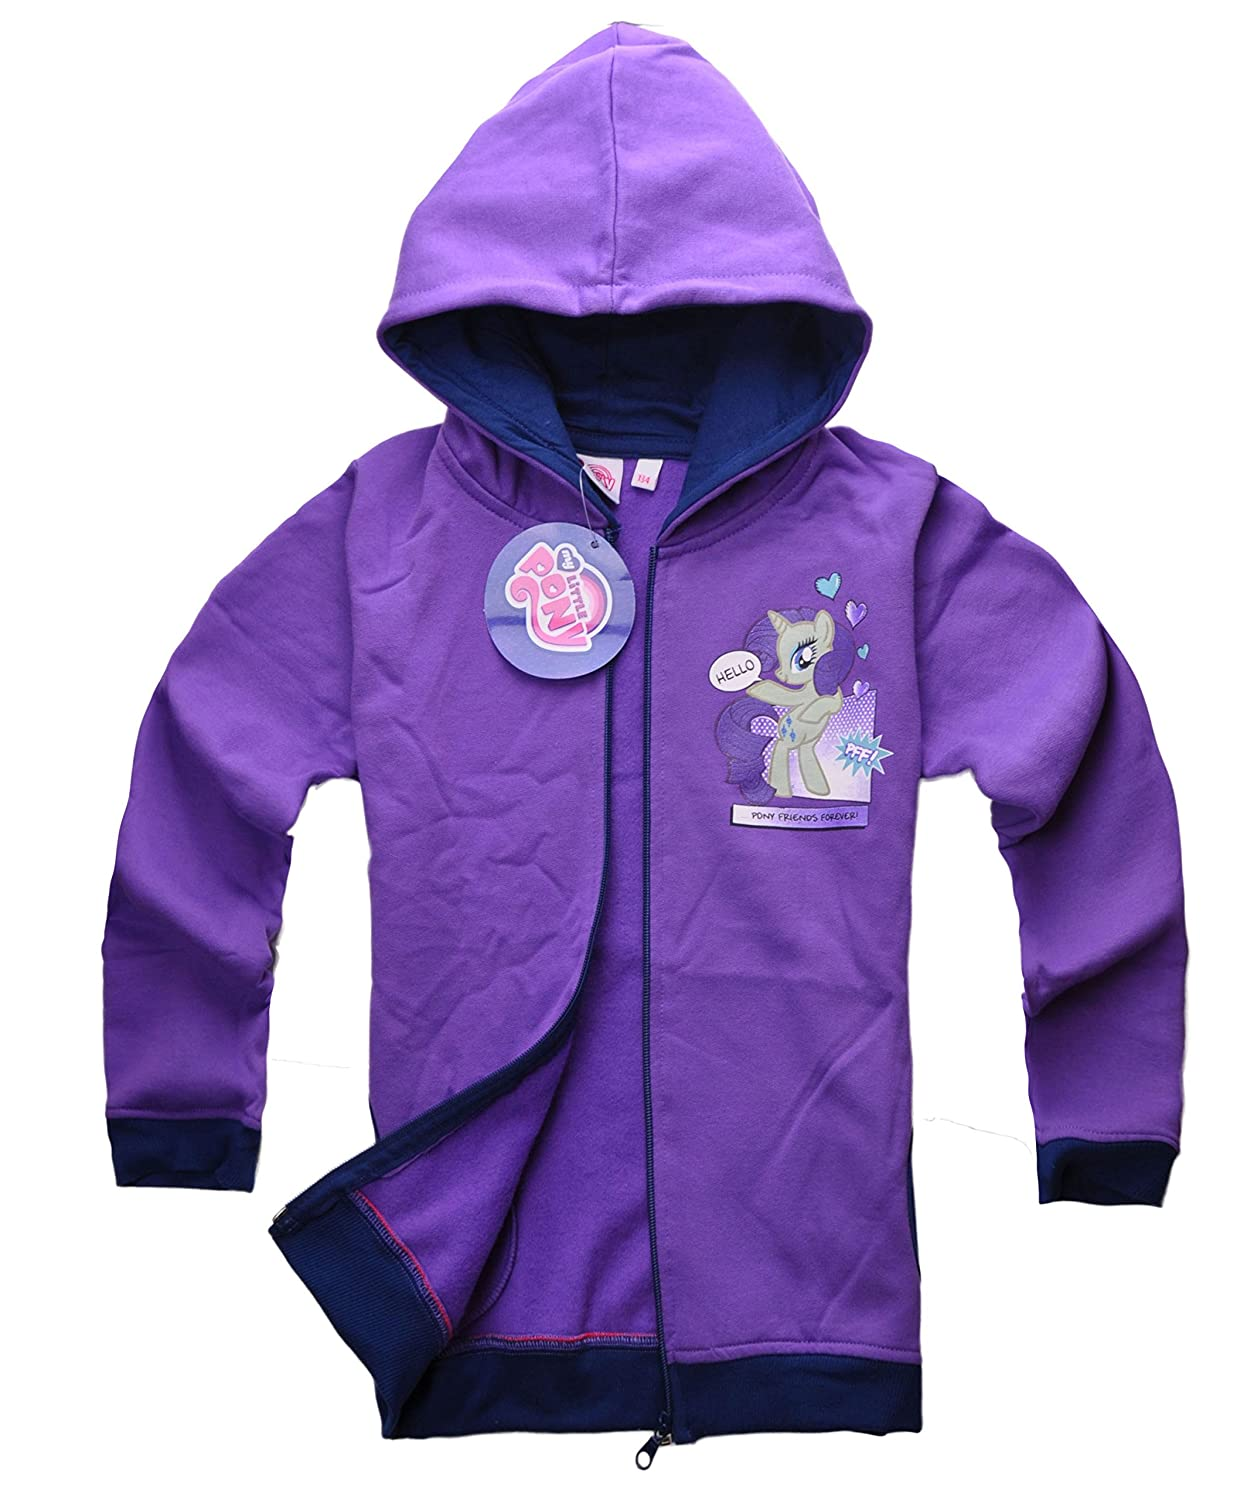 100% Official Licensed My Little Pony Rainbow Dash Girls Costume Hoodie Sweatshirt